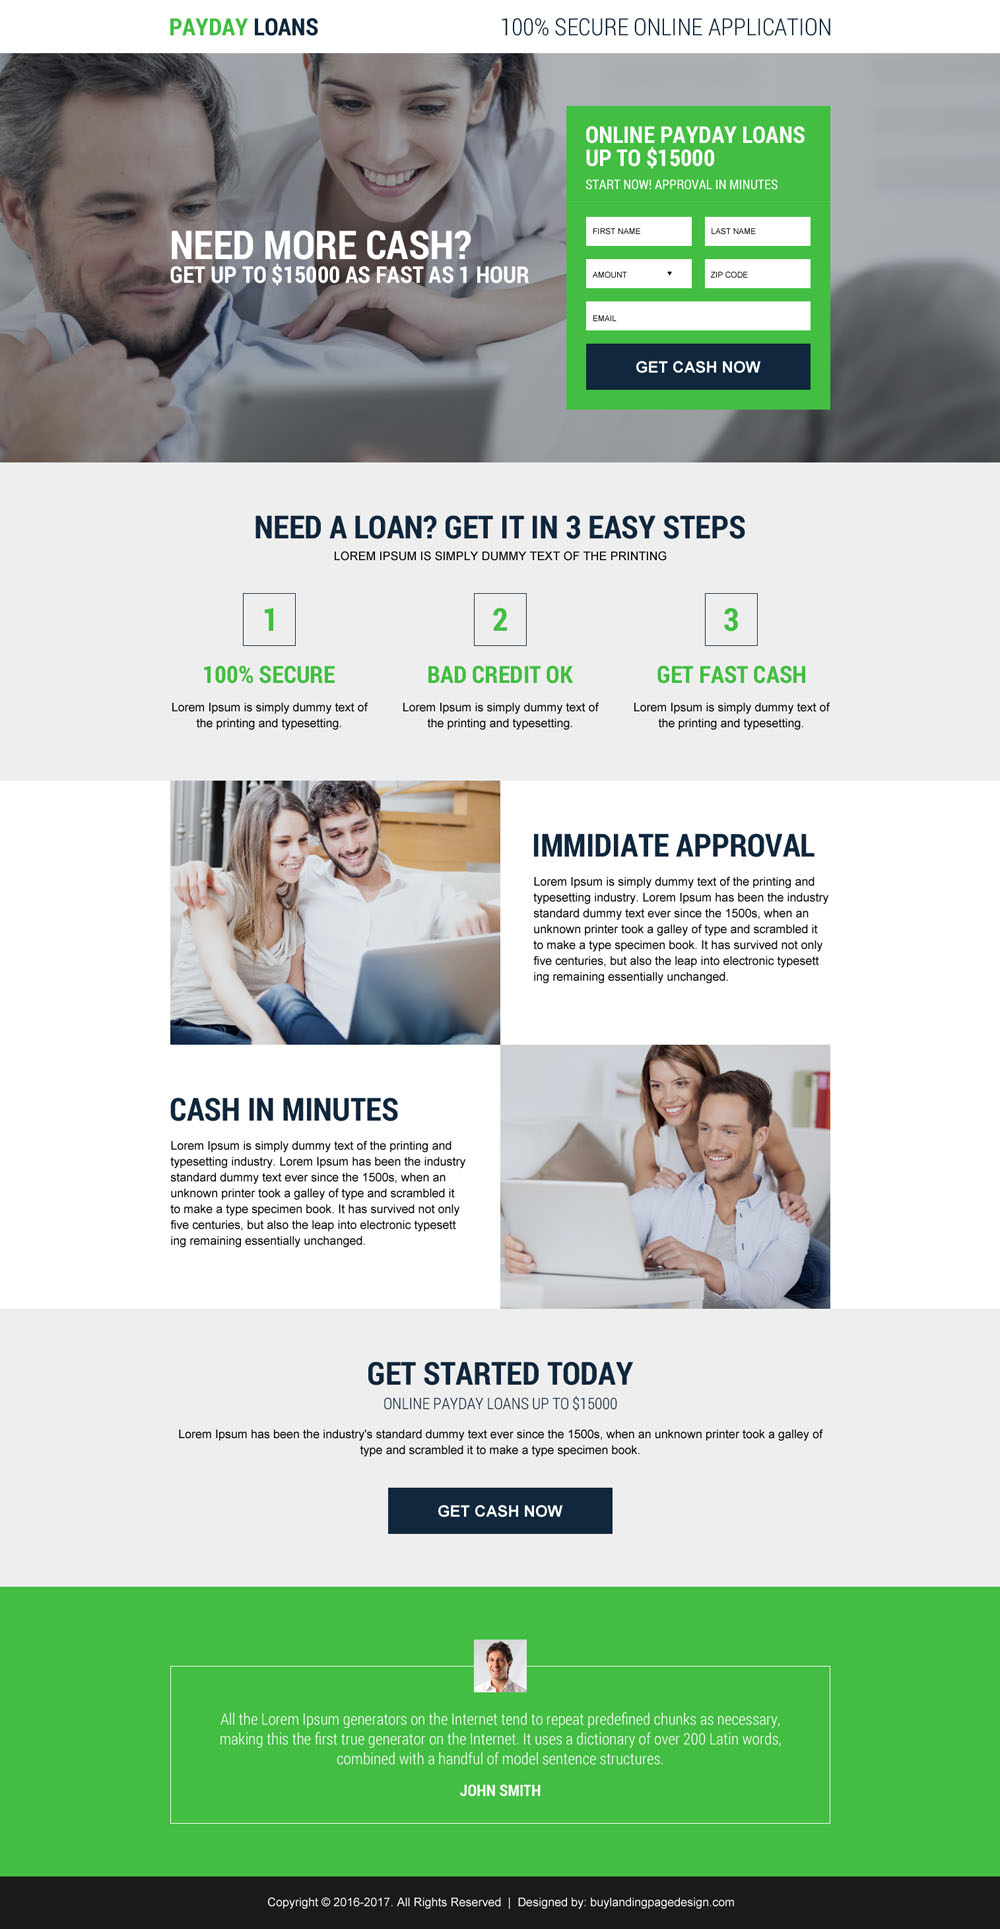 payday-loans-available-online-cash-lead-gen-converting-landing-page-design-029